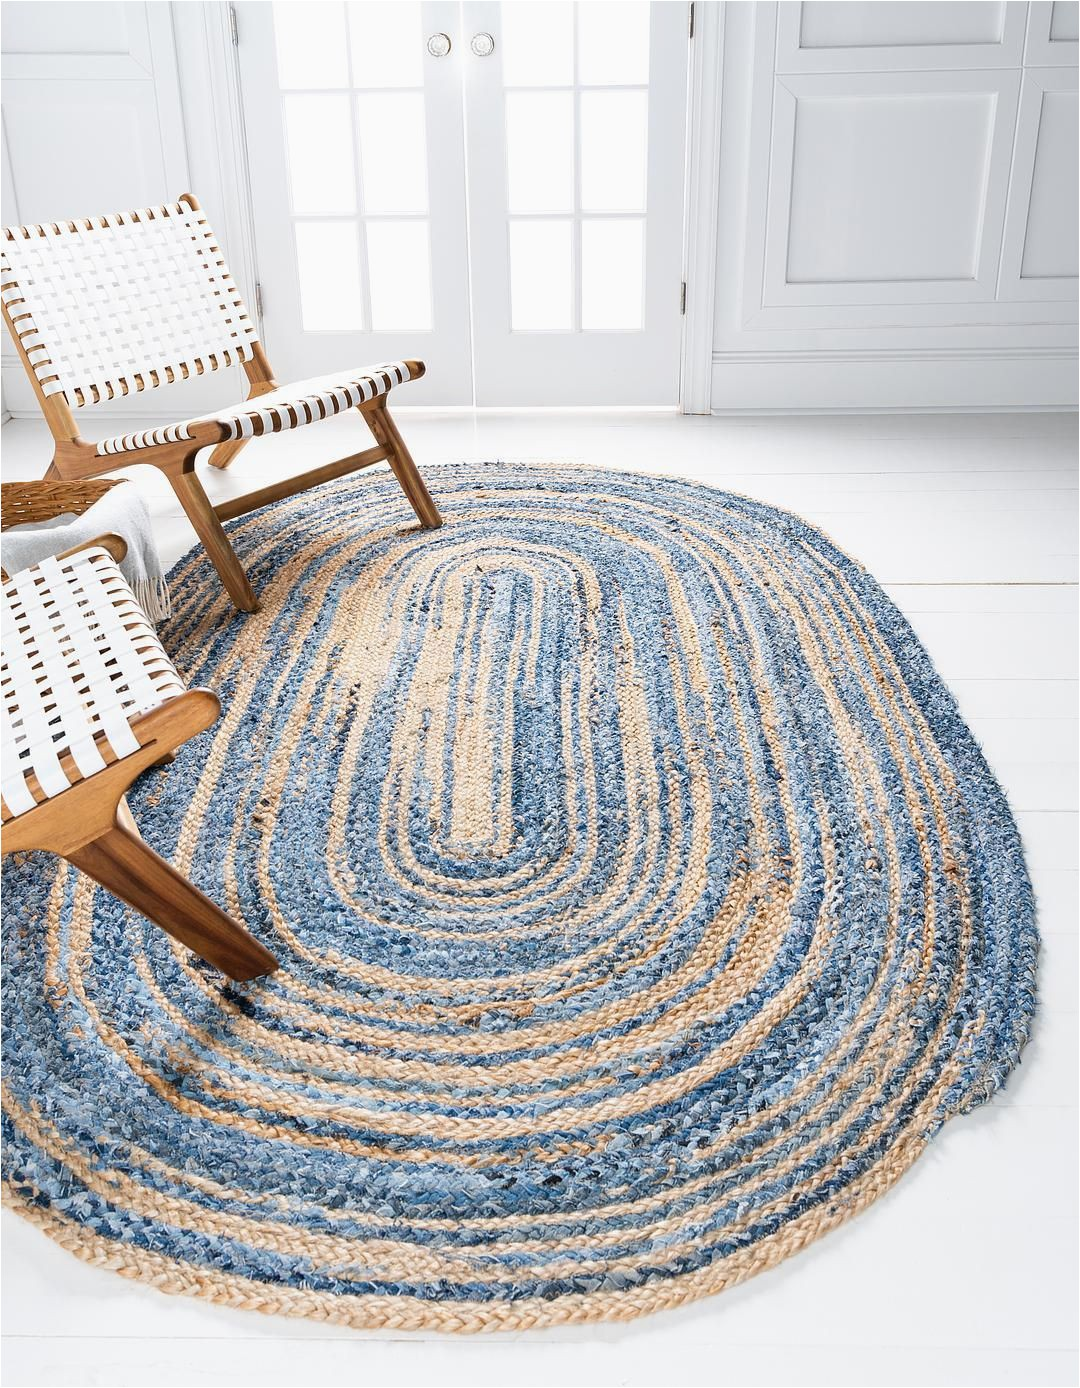 Round Blue Braided Rug Blue 5 X 8 Braided Chindi Oval Rug area Rugs